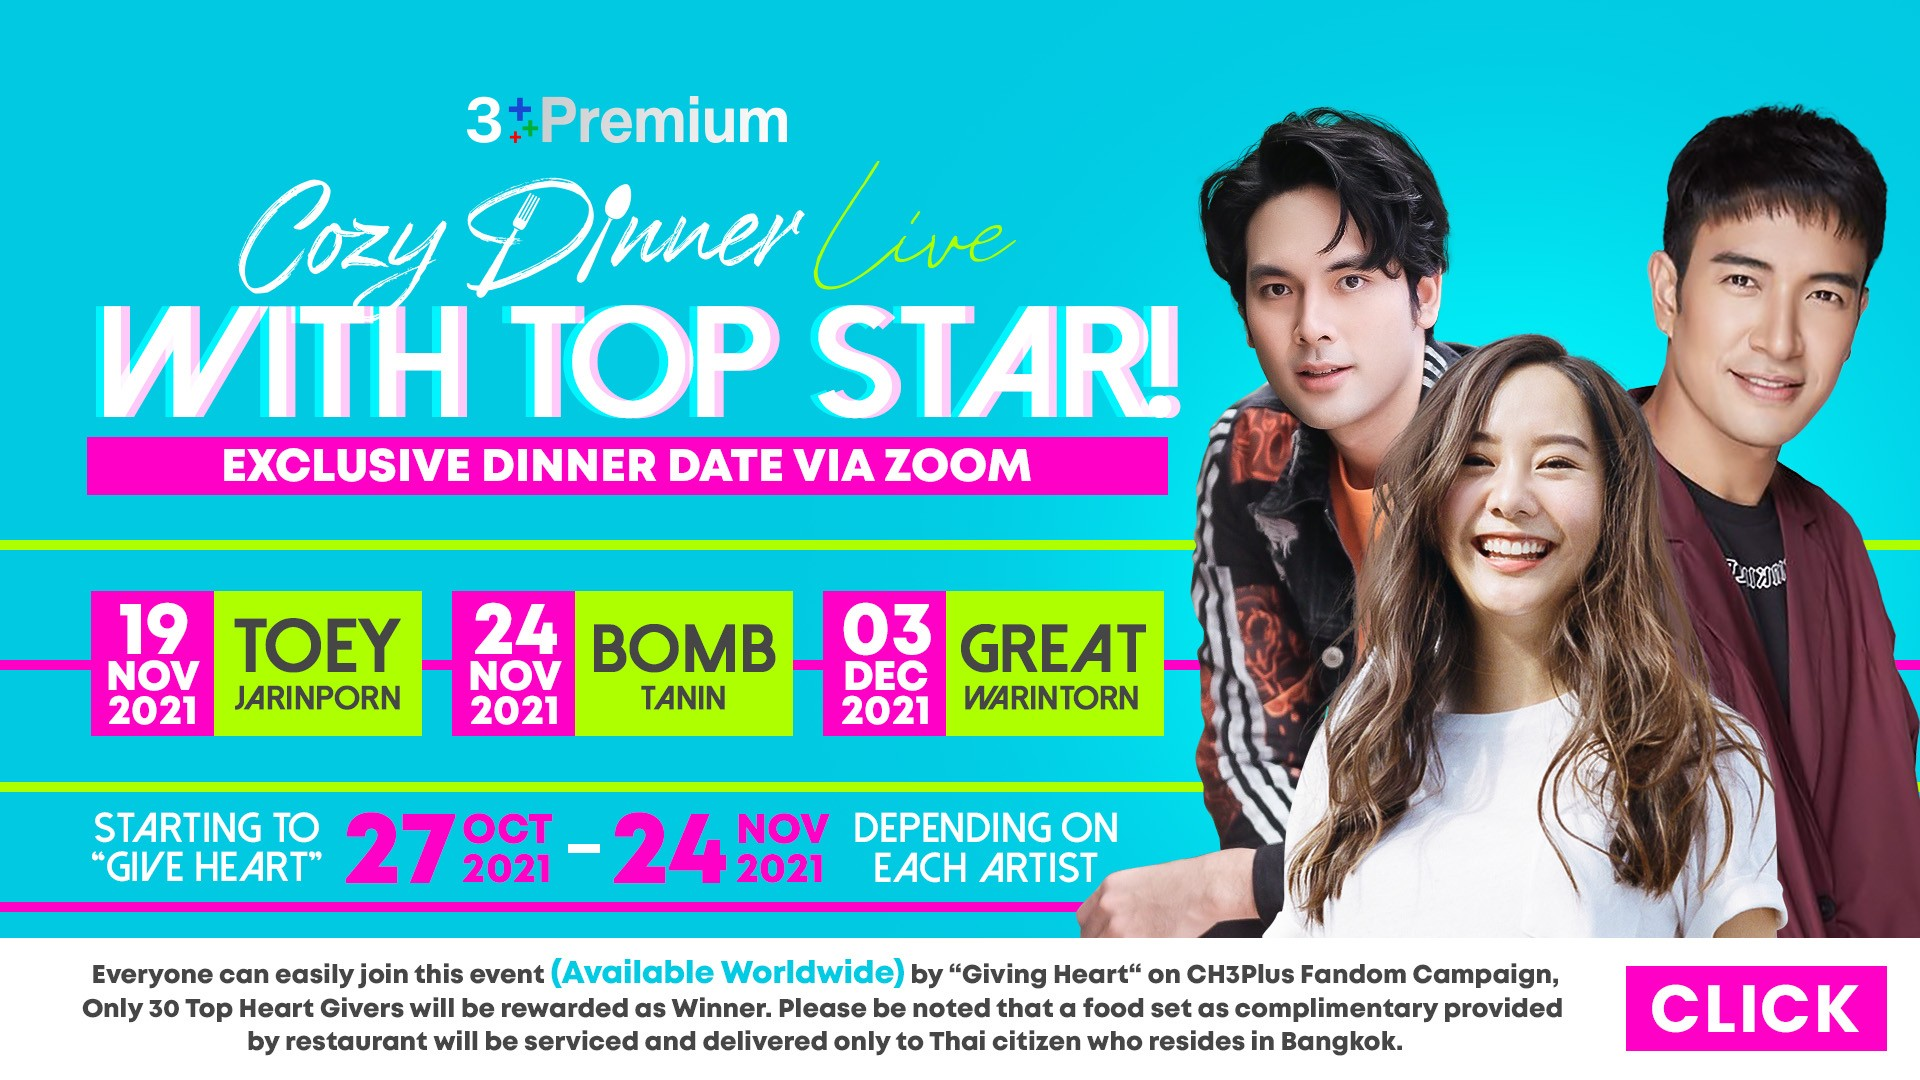 Cozy Dinner Live with Top Star!